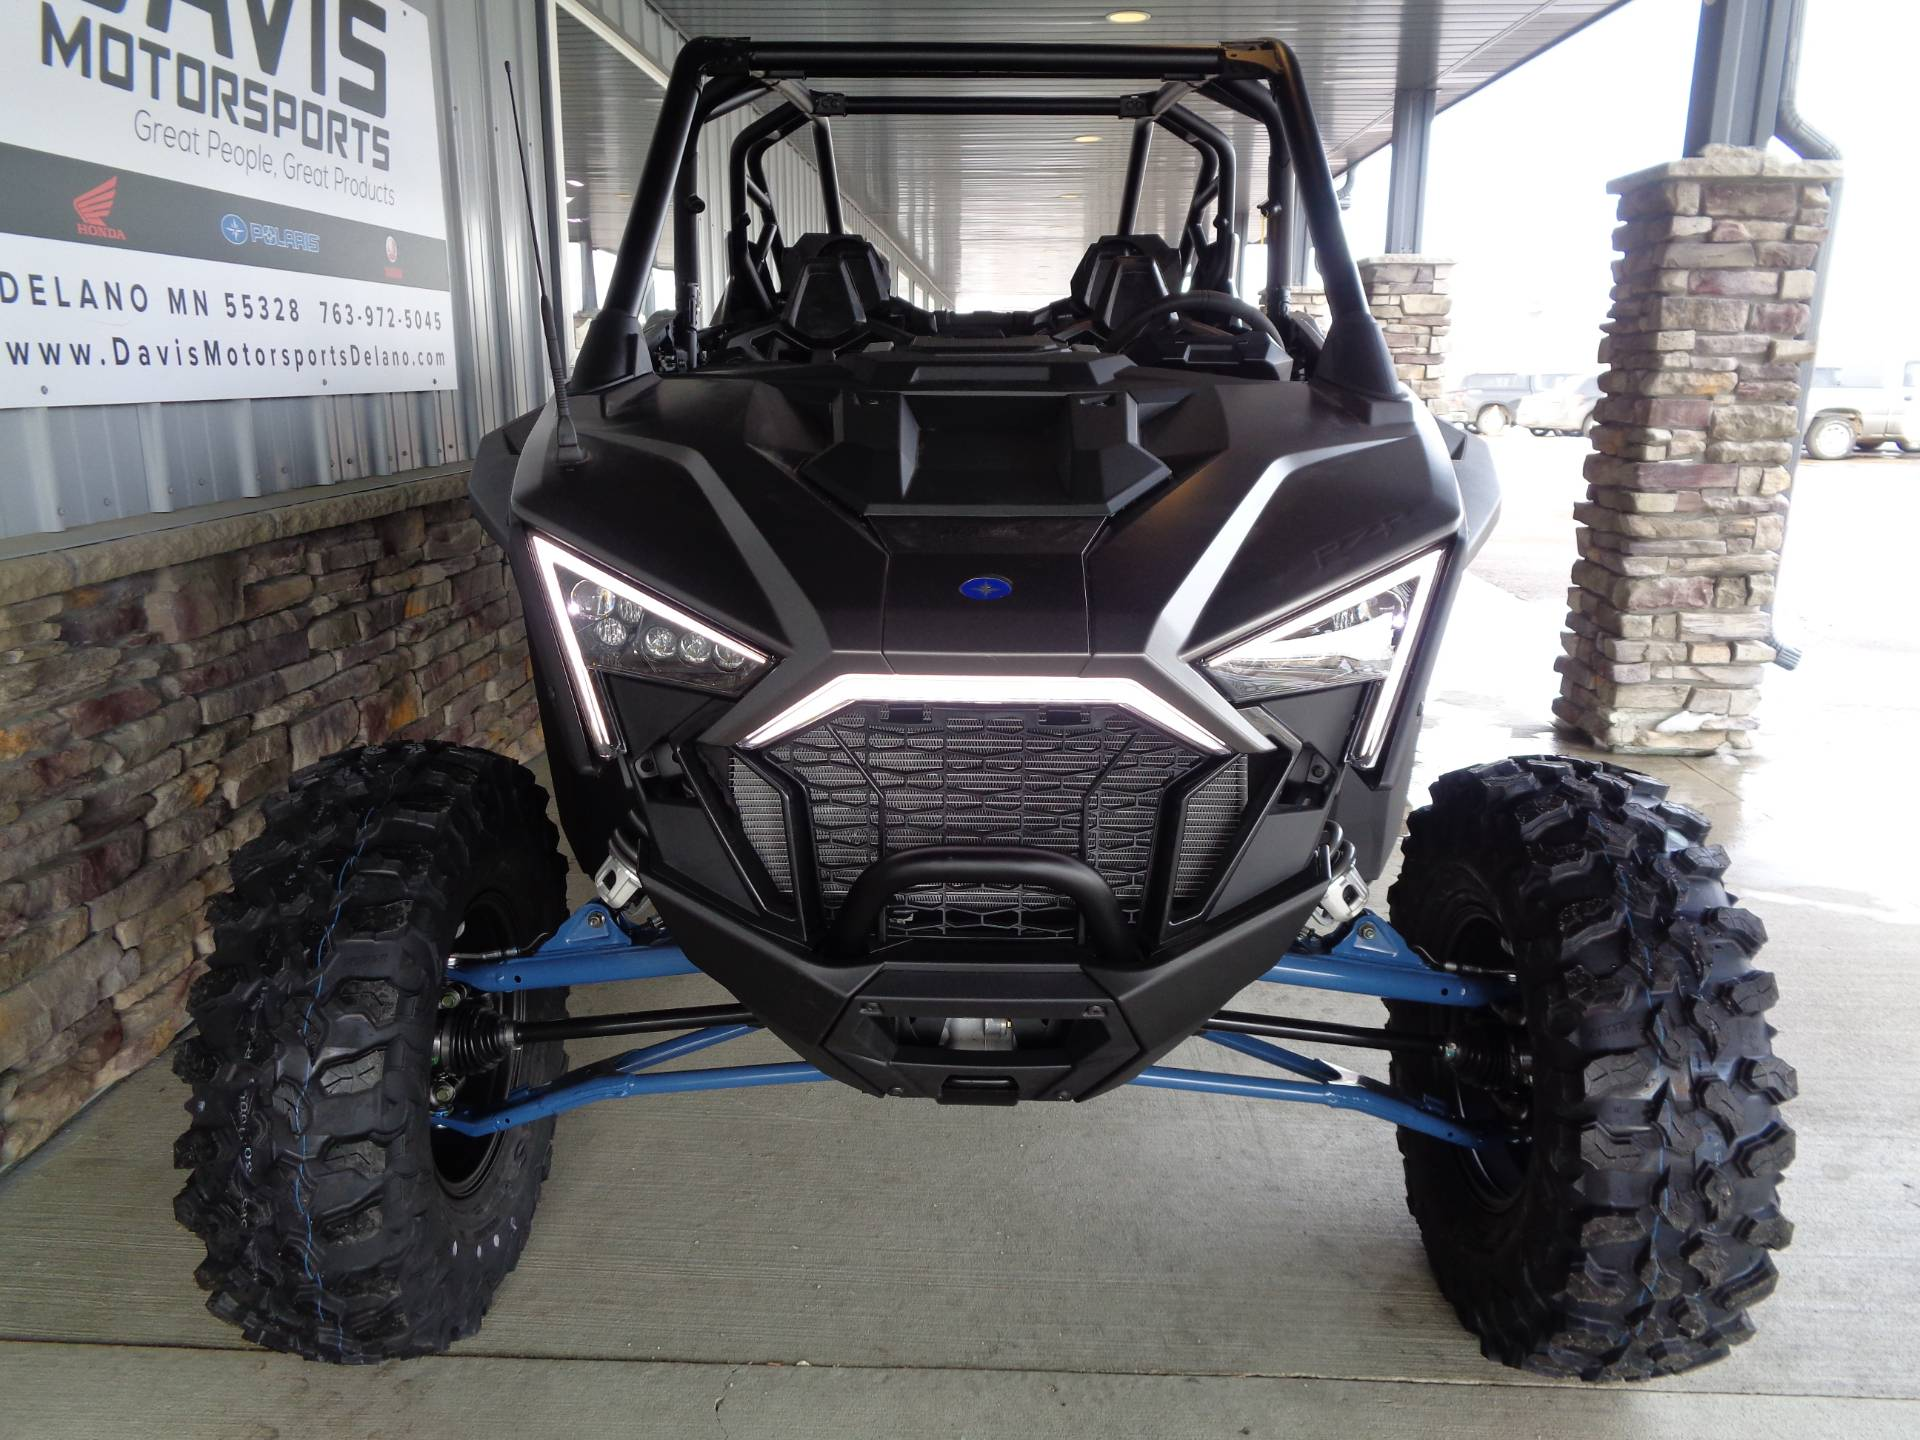 2021 Polaris RZR PRO XP 4 Ultimate in Delano, Minnesota - Photo 13